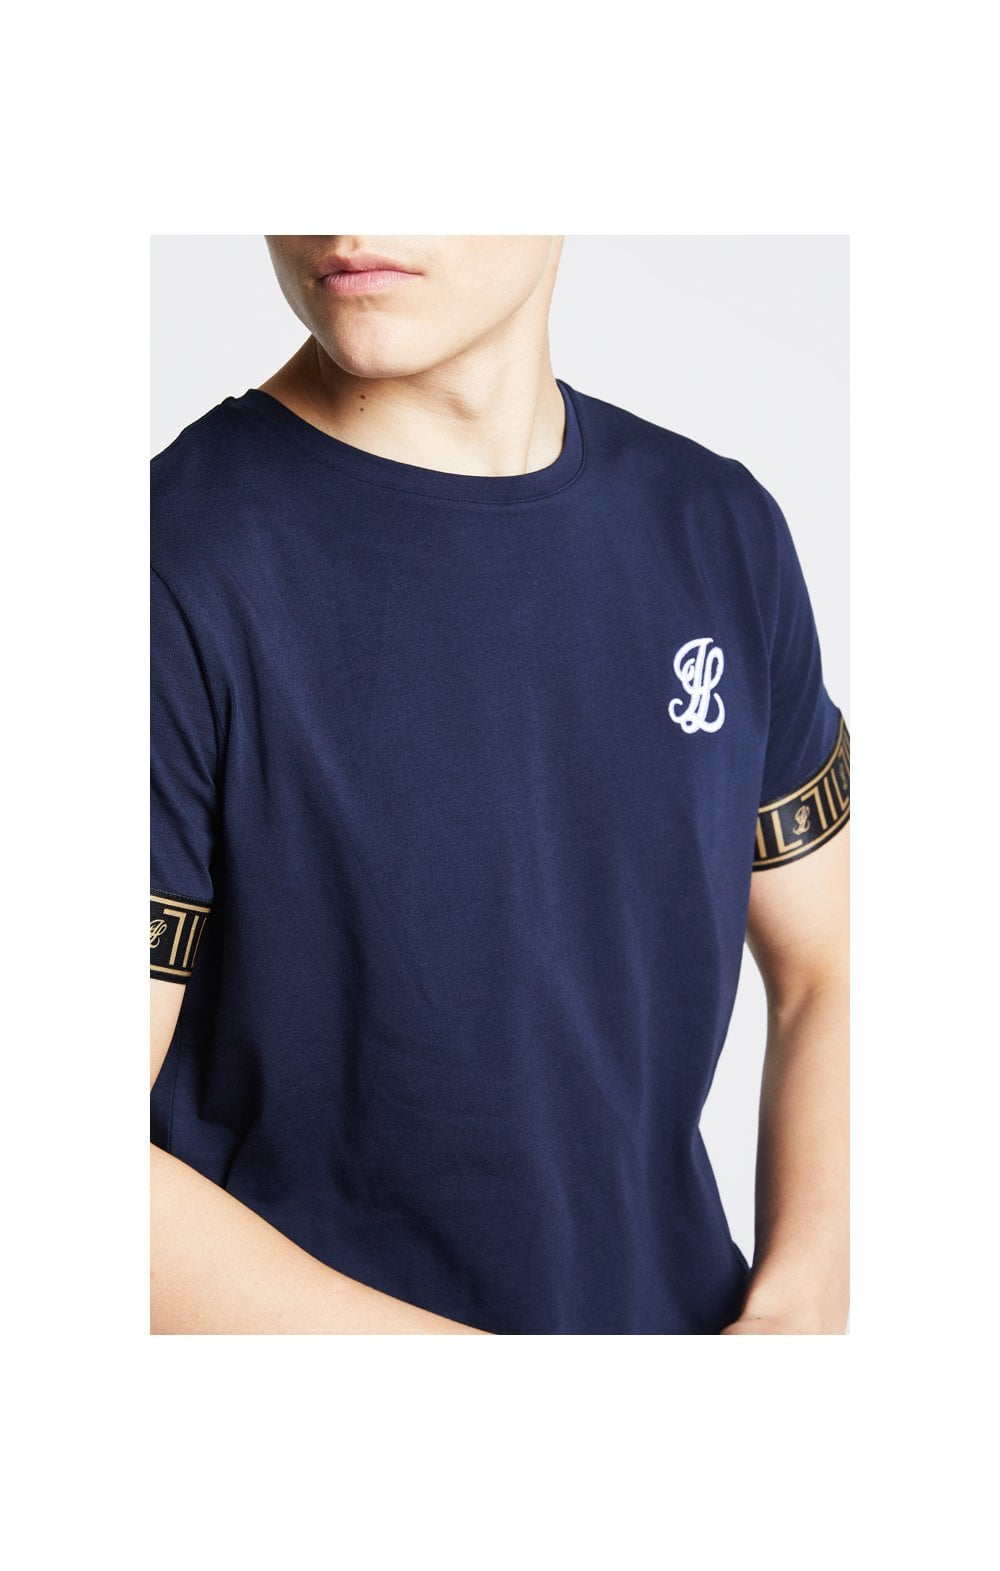 Load image into Gallery viewer, Illusive London Tech Tee - Navy